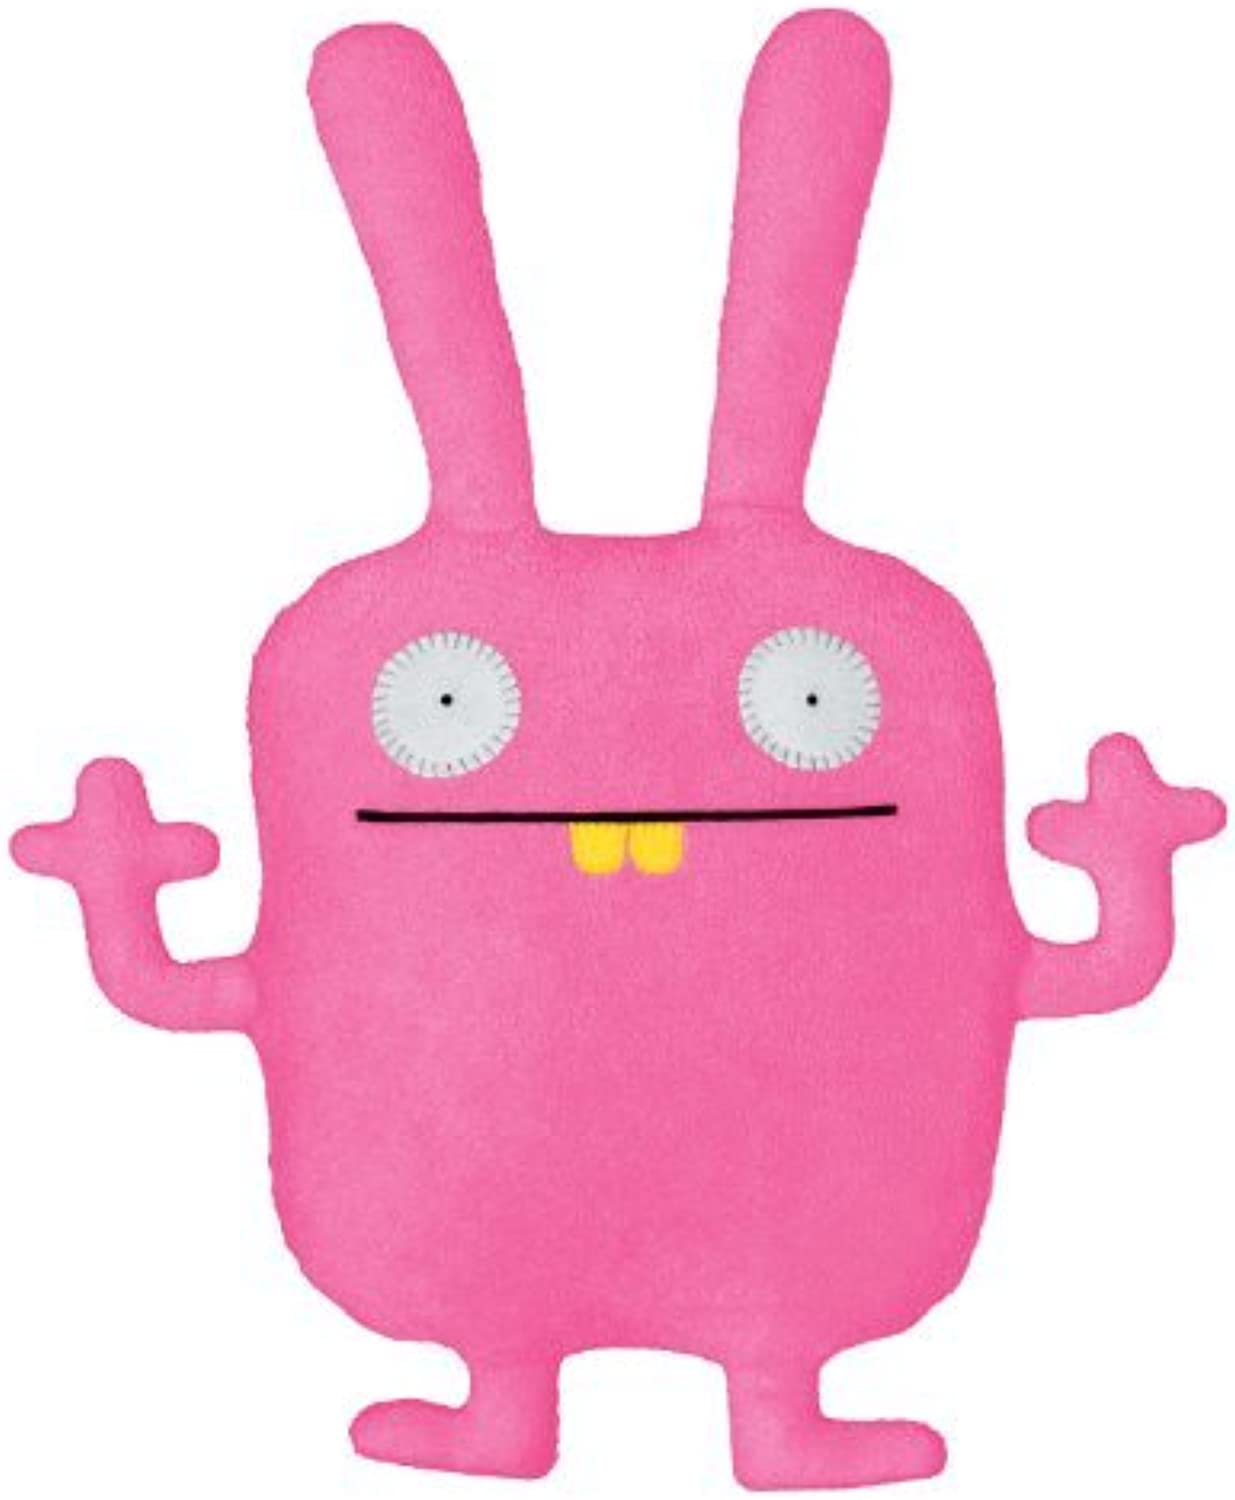 Ugly Doll Classic Plush Doll, Wippy by Uglydoll